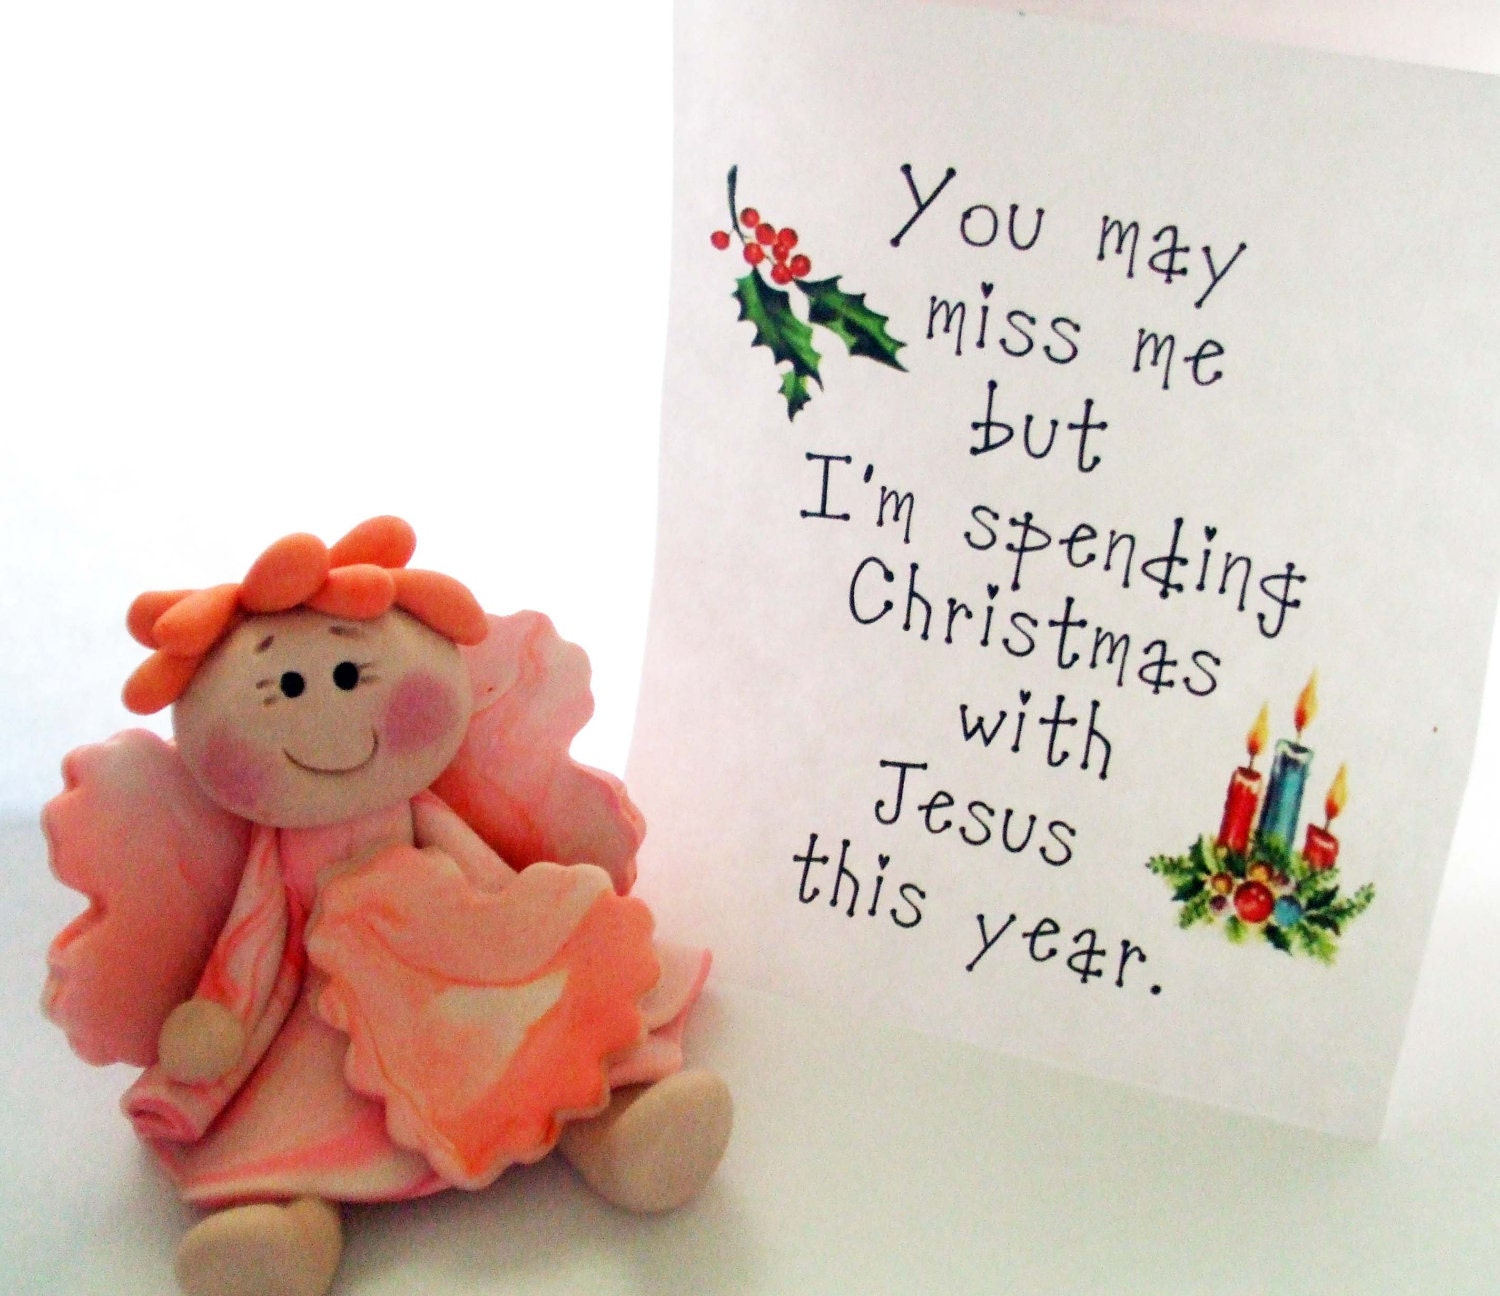 Spending Christmas With Jesus This Year Ornament